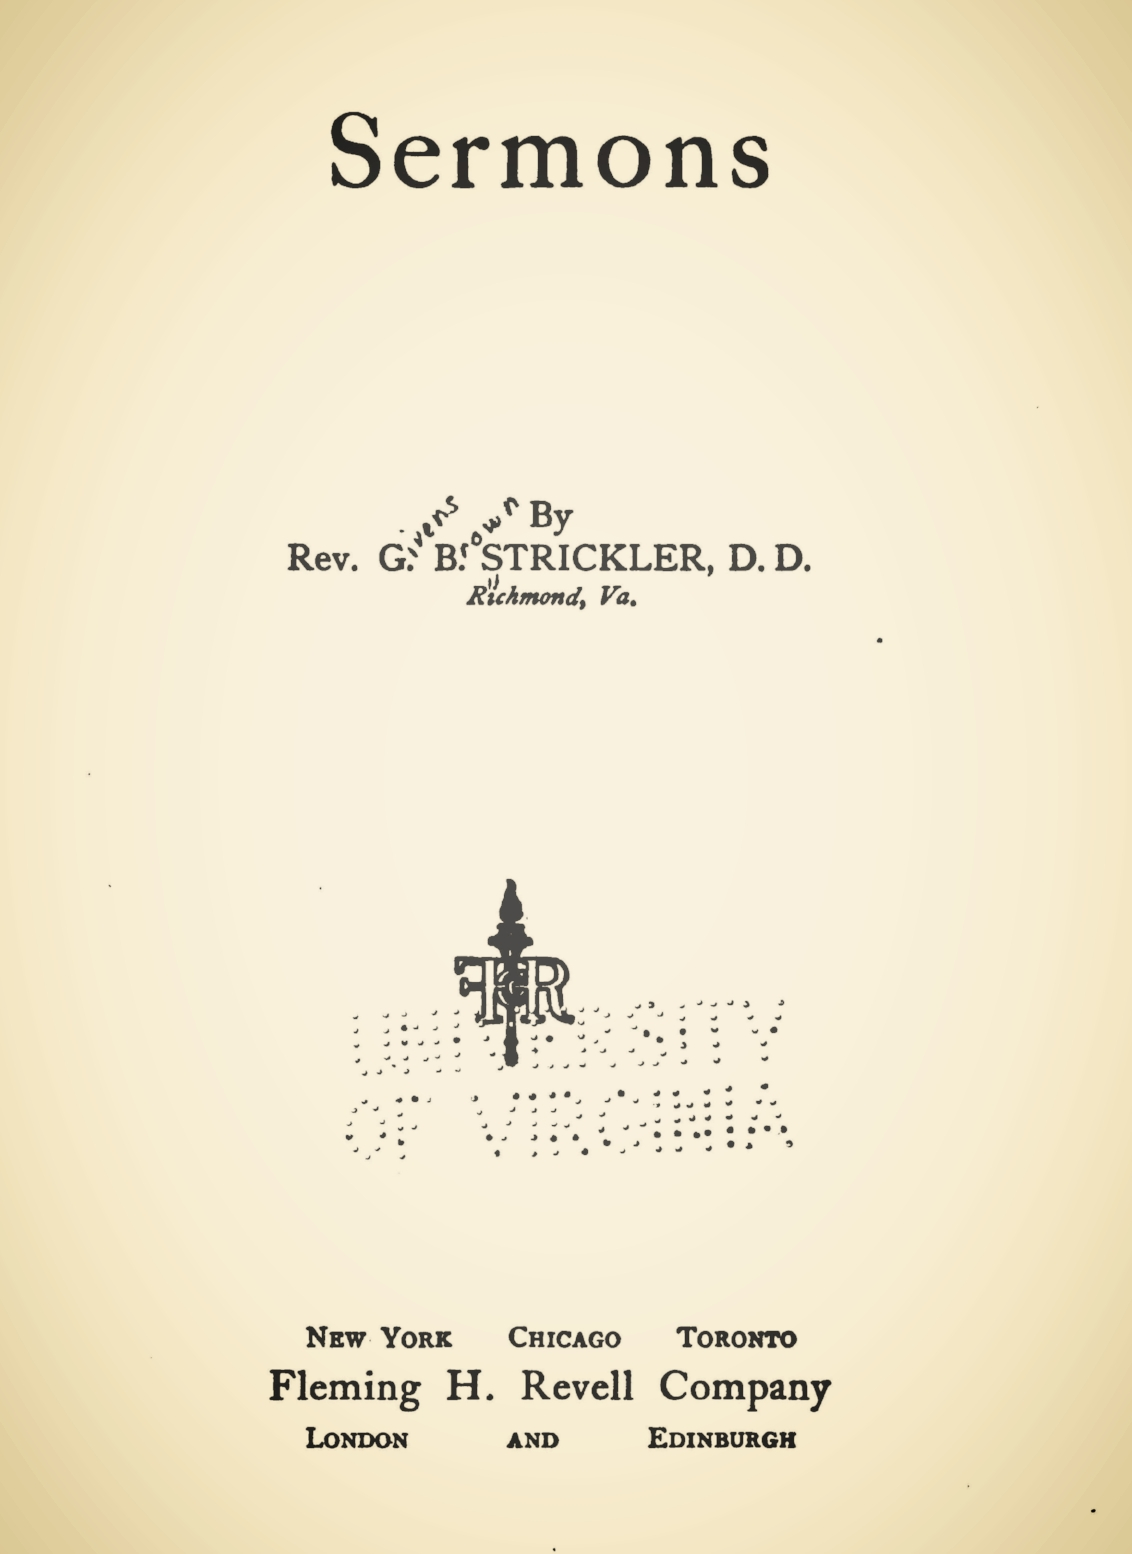 Strickler, Givens Brown, Sermons Title Page.jpg